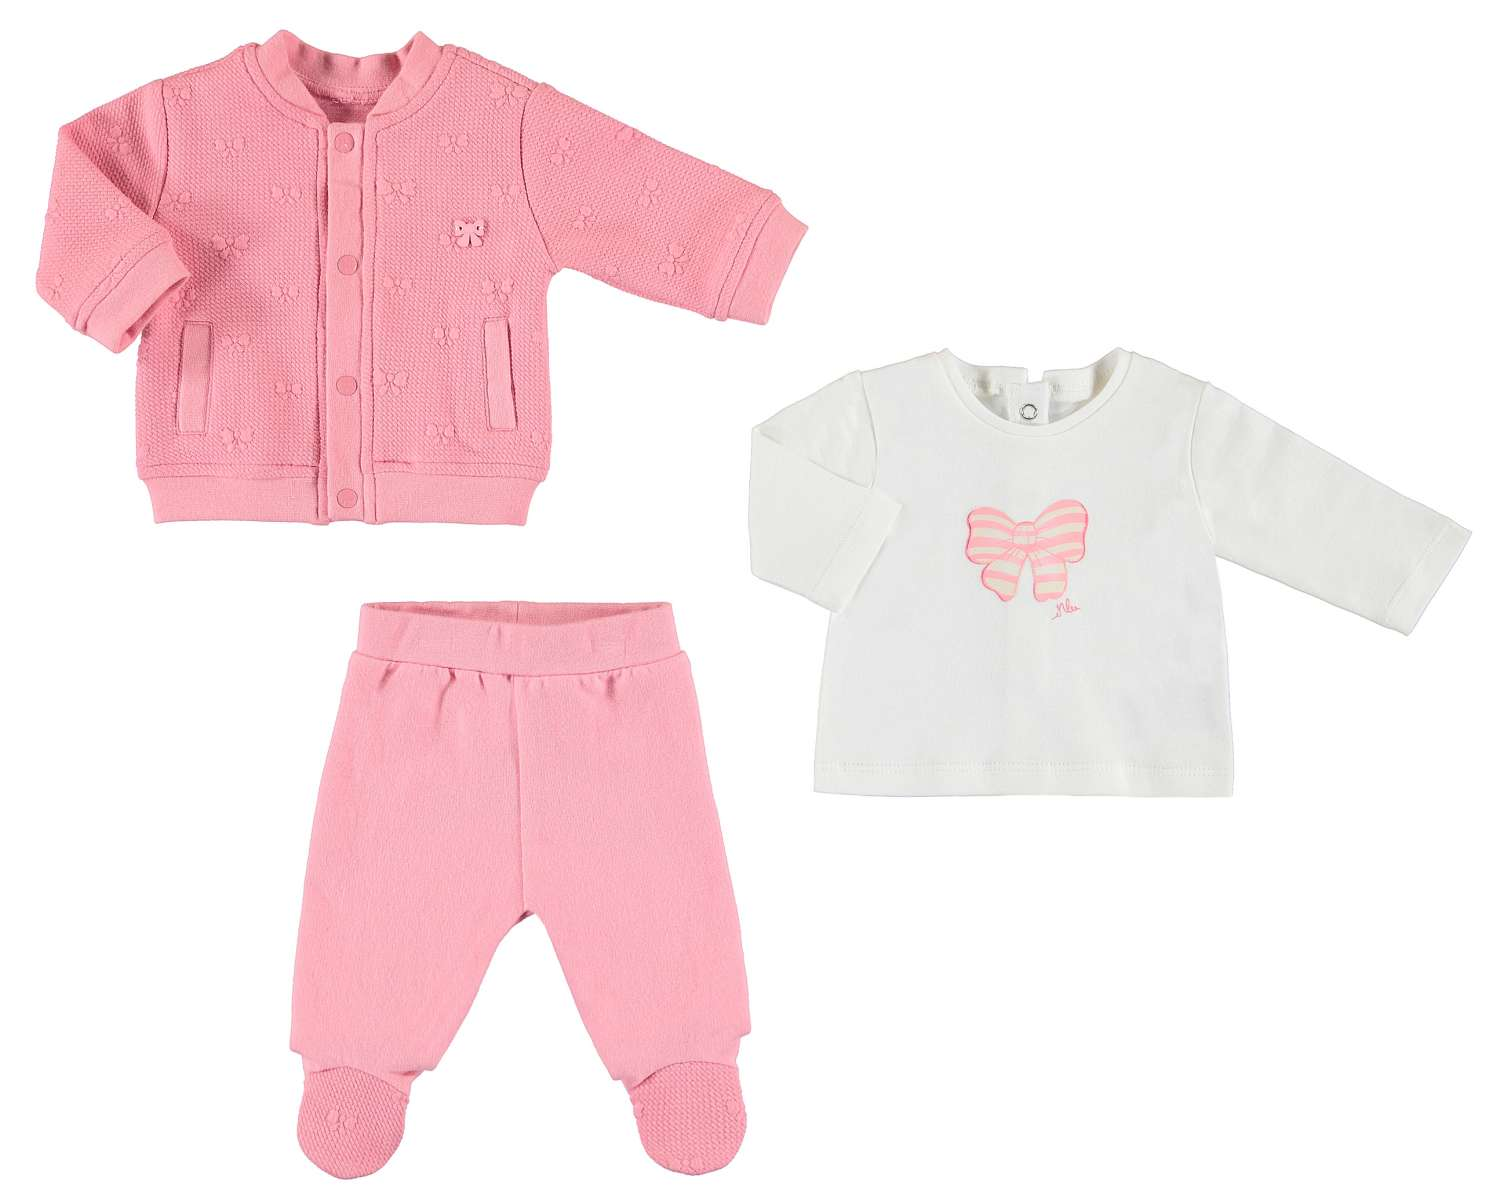 60fc53867f44a MAYORAL Newborn Baby Suit (SET 3 pieces) 2-4 months - My Special ...